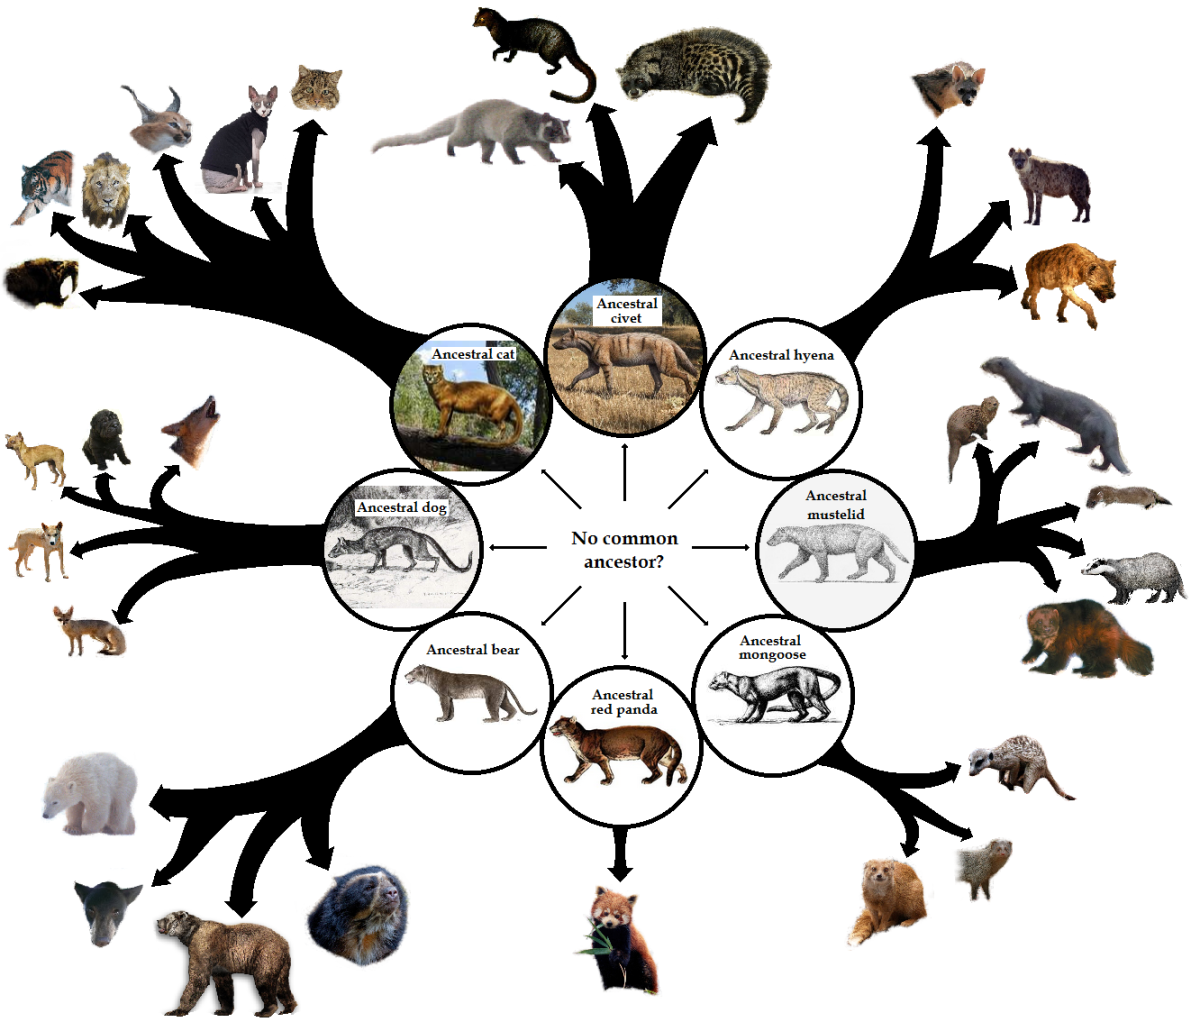 Ancestral cat spirit clipart clipart images gallery for free.